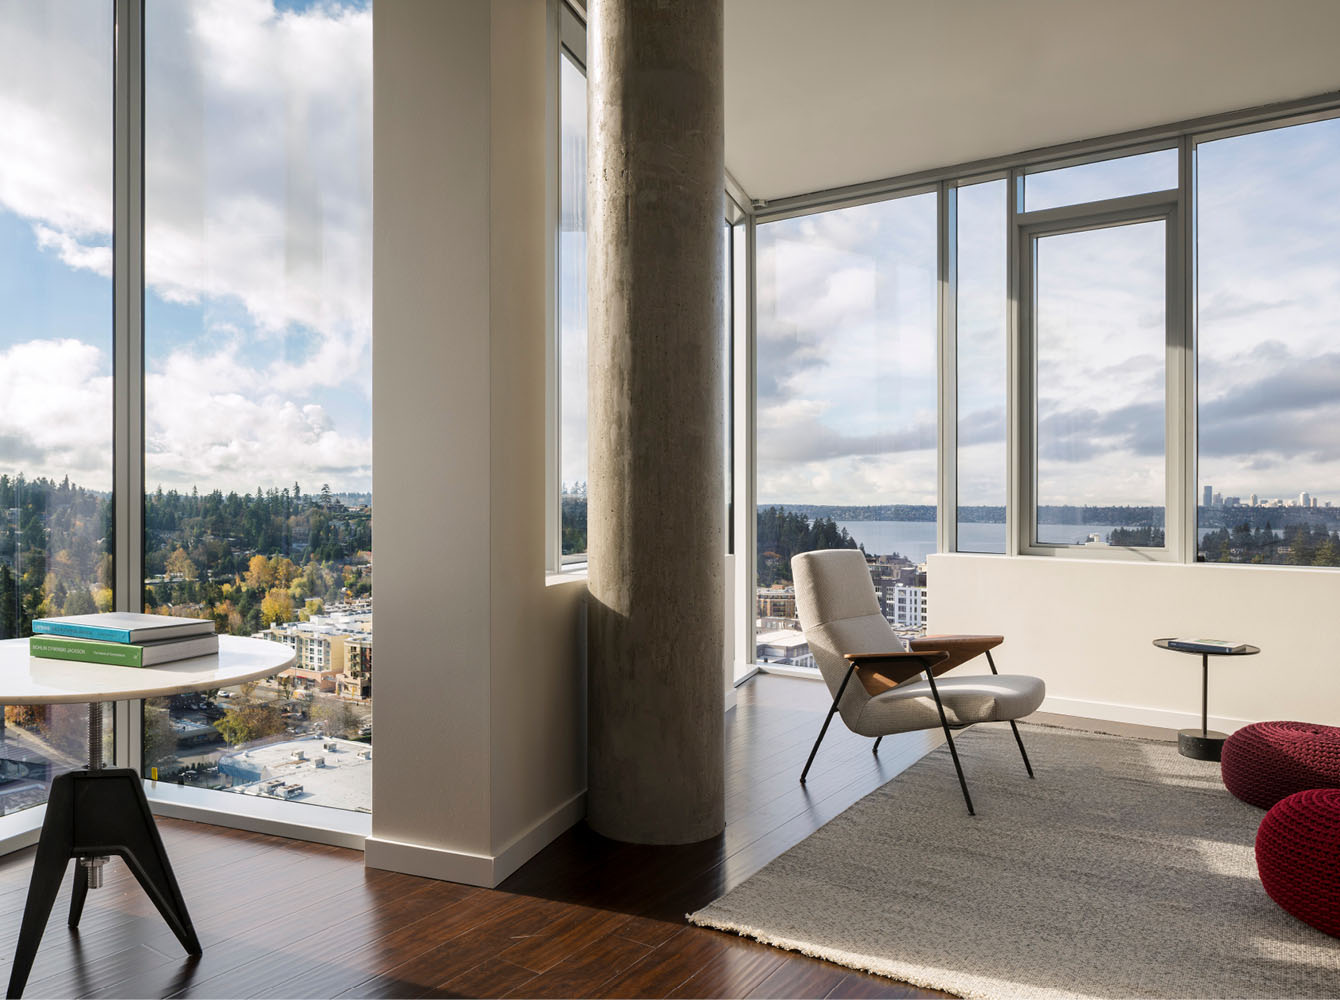 A typical unit with views of Lake Washington and the Seattle skyline beyond. Andrew Pogue